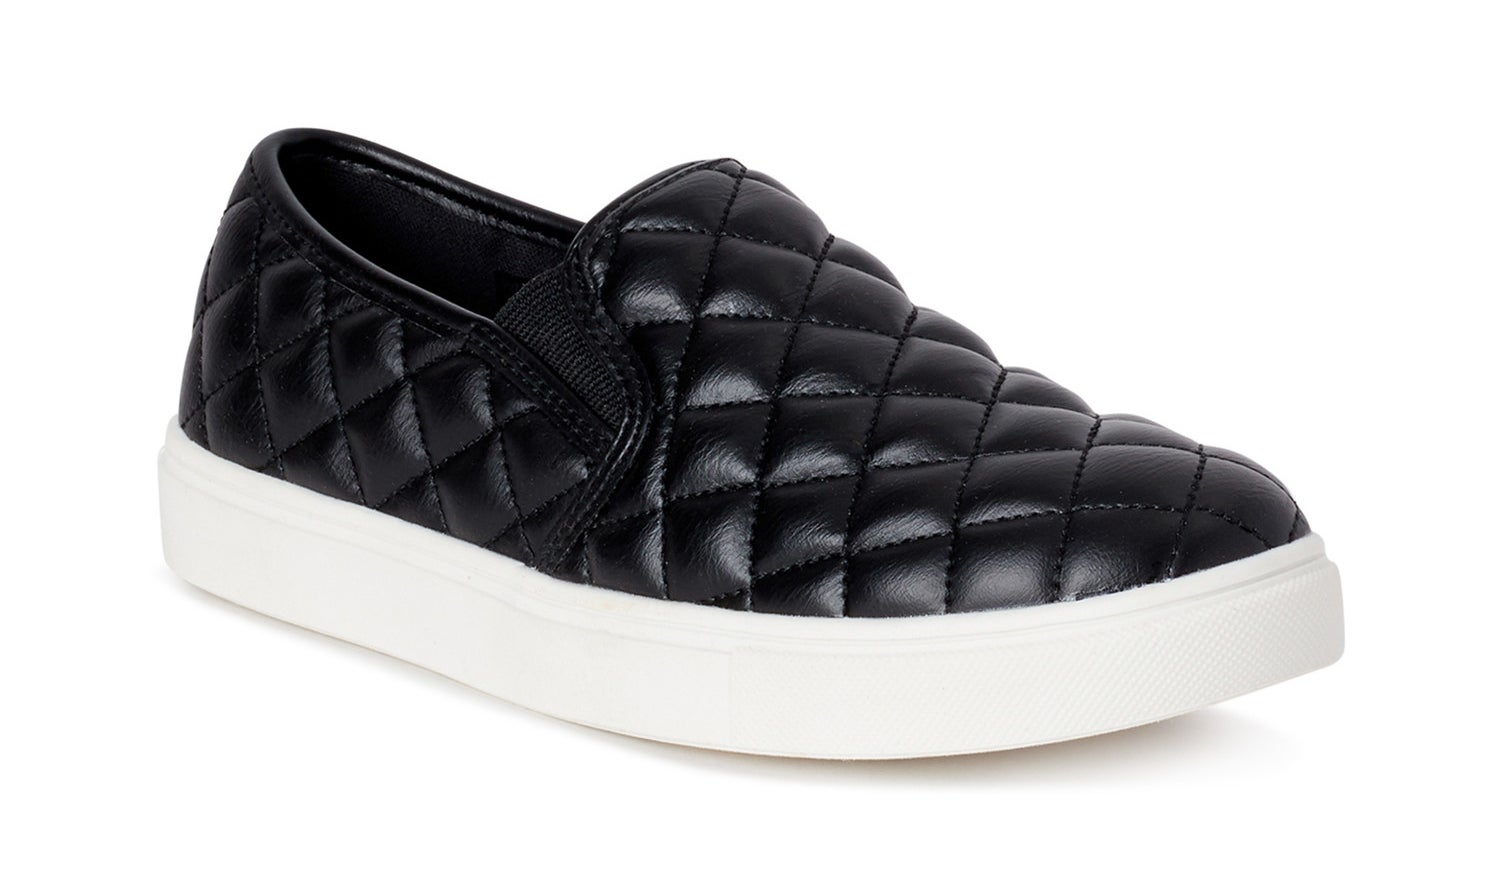 black quilted slip-on sneaker with a white sole